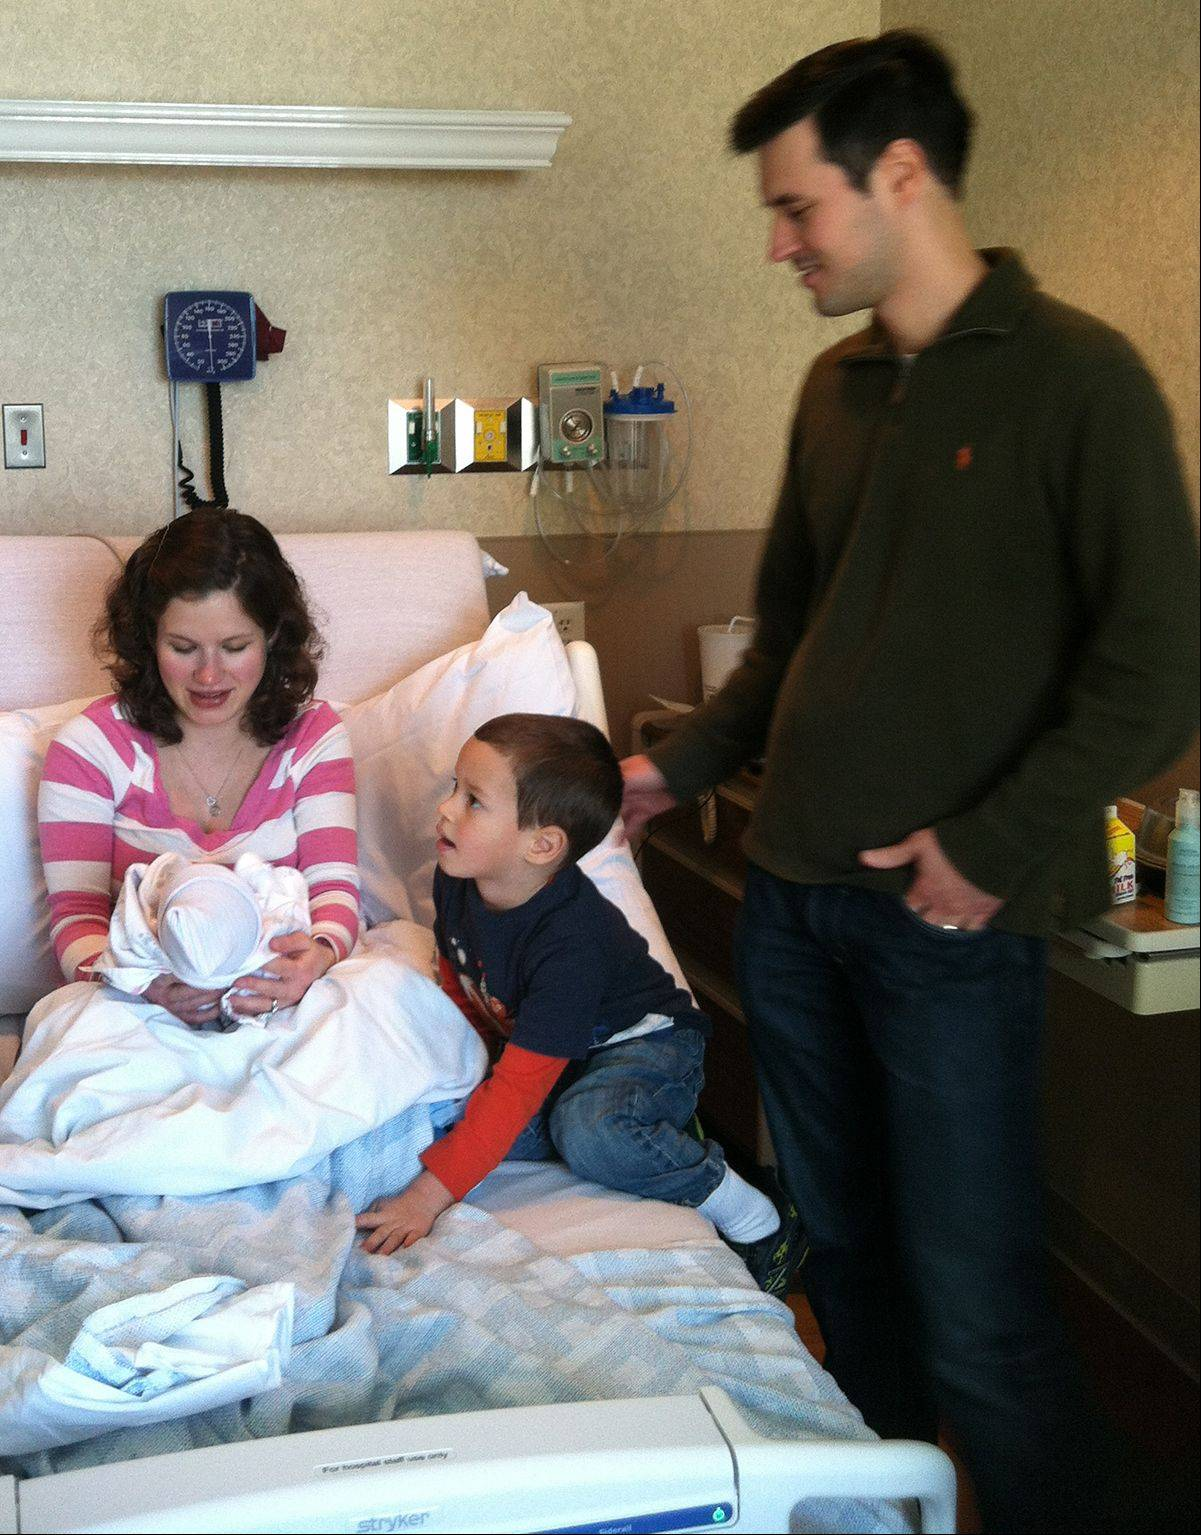 The first baby born in McHenry County in 2013 is Christopher Canache, born to parents Daniela and Pedro Canache of Huntley at 12:10 a.m. at Centegra Hospital in Woodstock. Her 4-year-old brother, Daniel, visited.